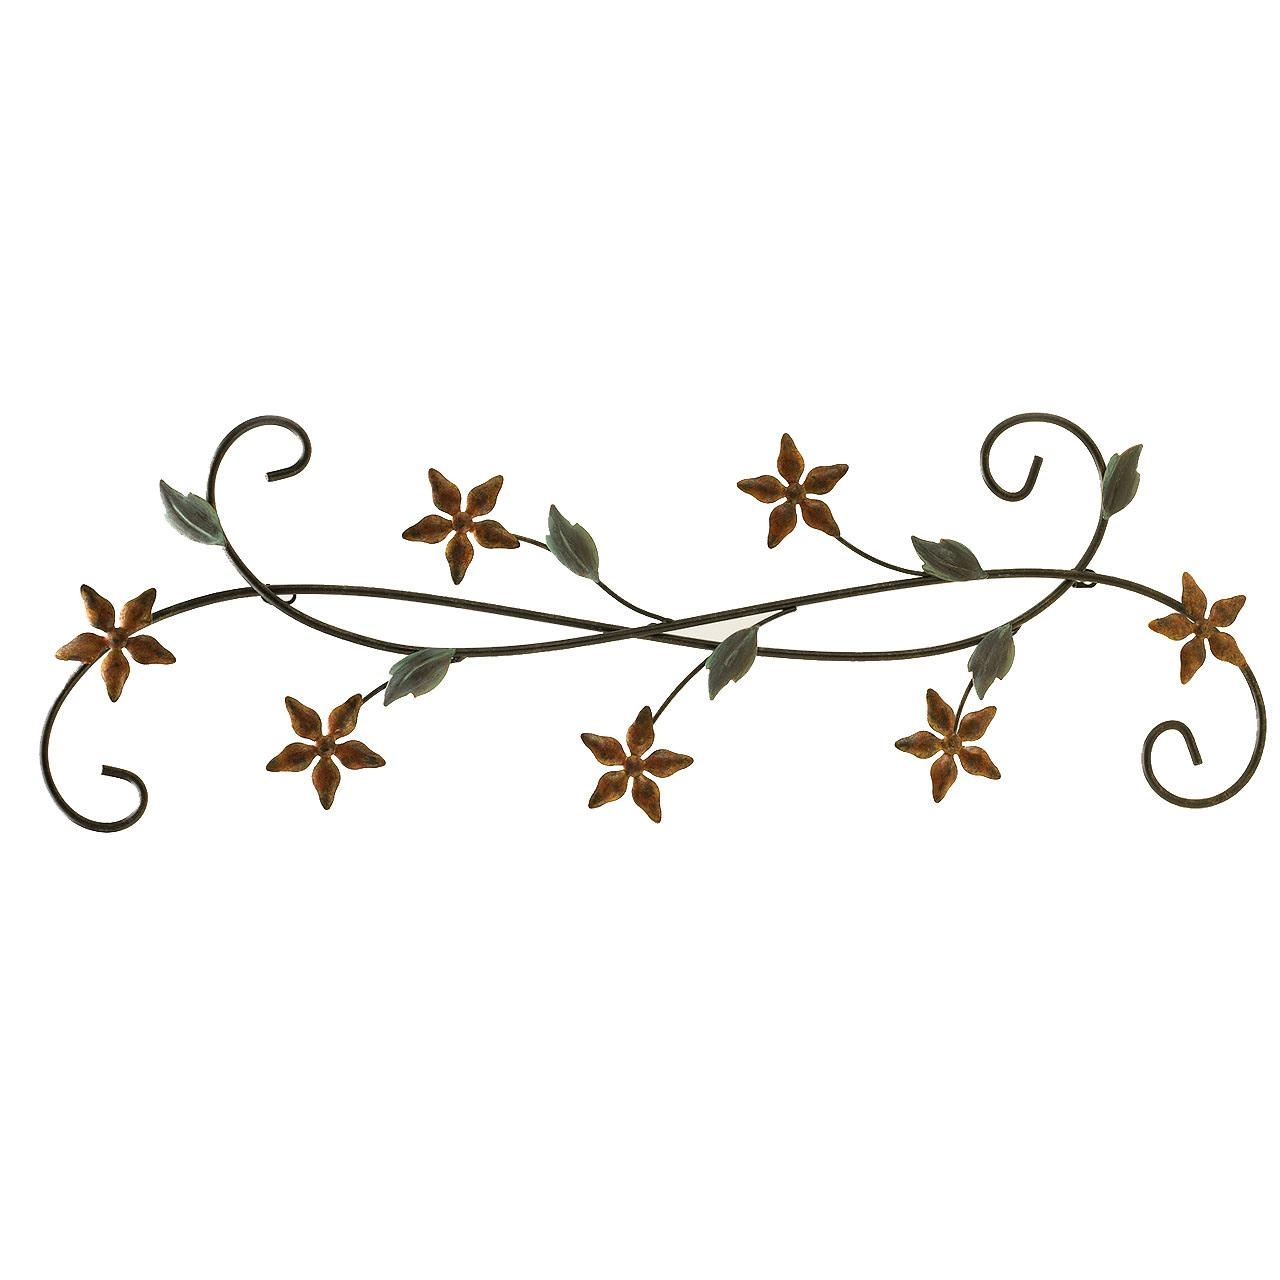 Fetco Home Decor Katelyn Floral Scroll Wall Art L Icn Trading Regarding Fetco Home Decor Wall Art (View 7 of 20)